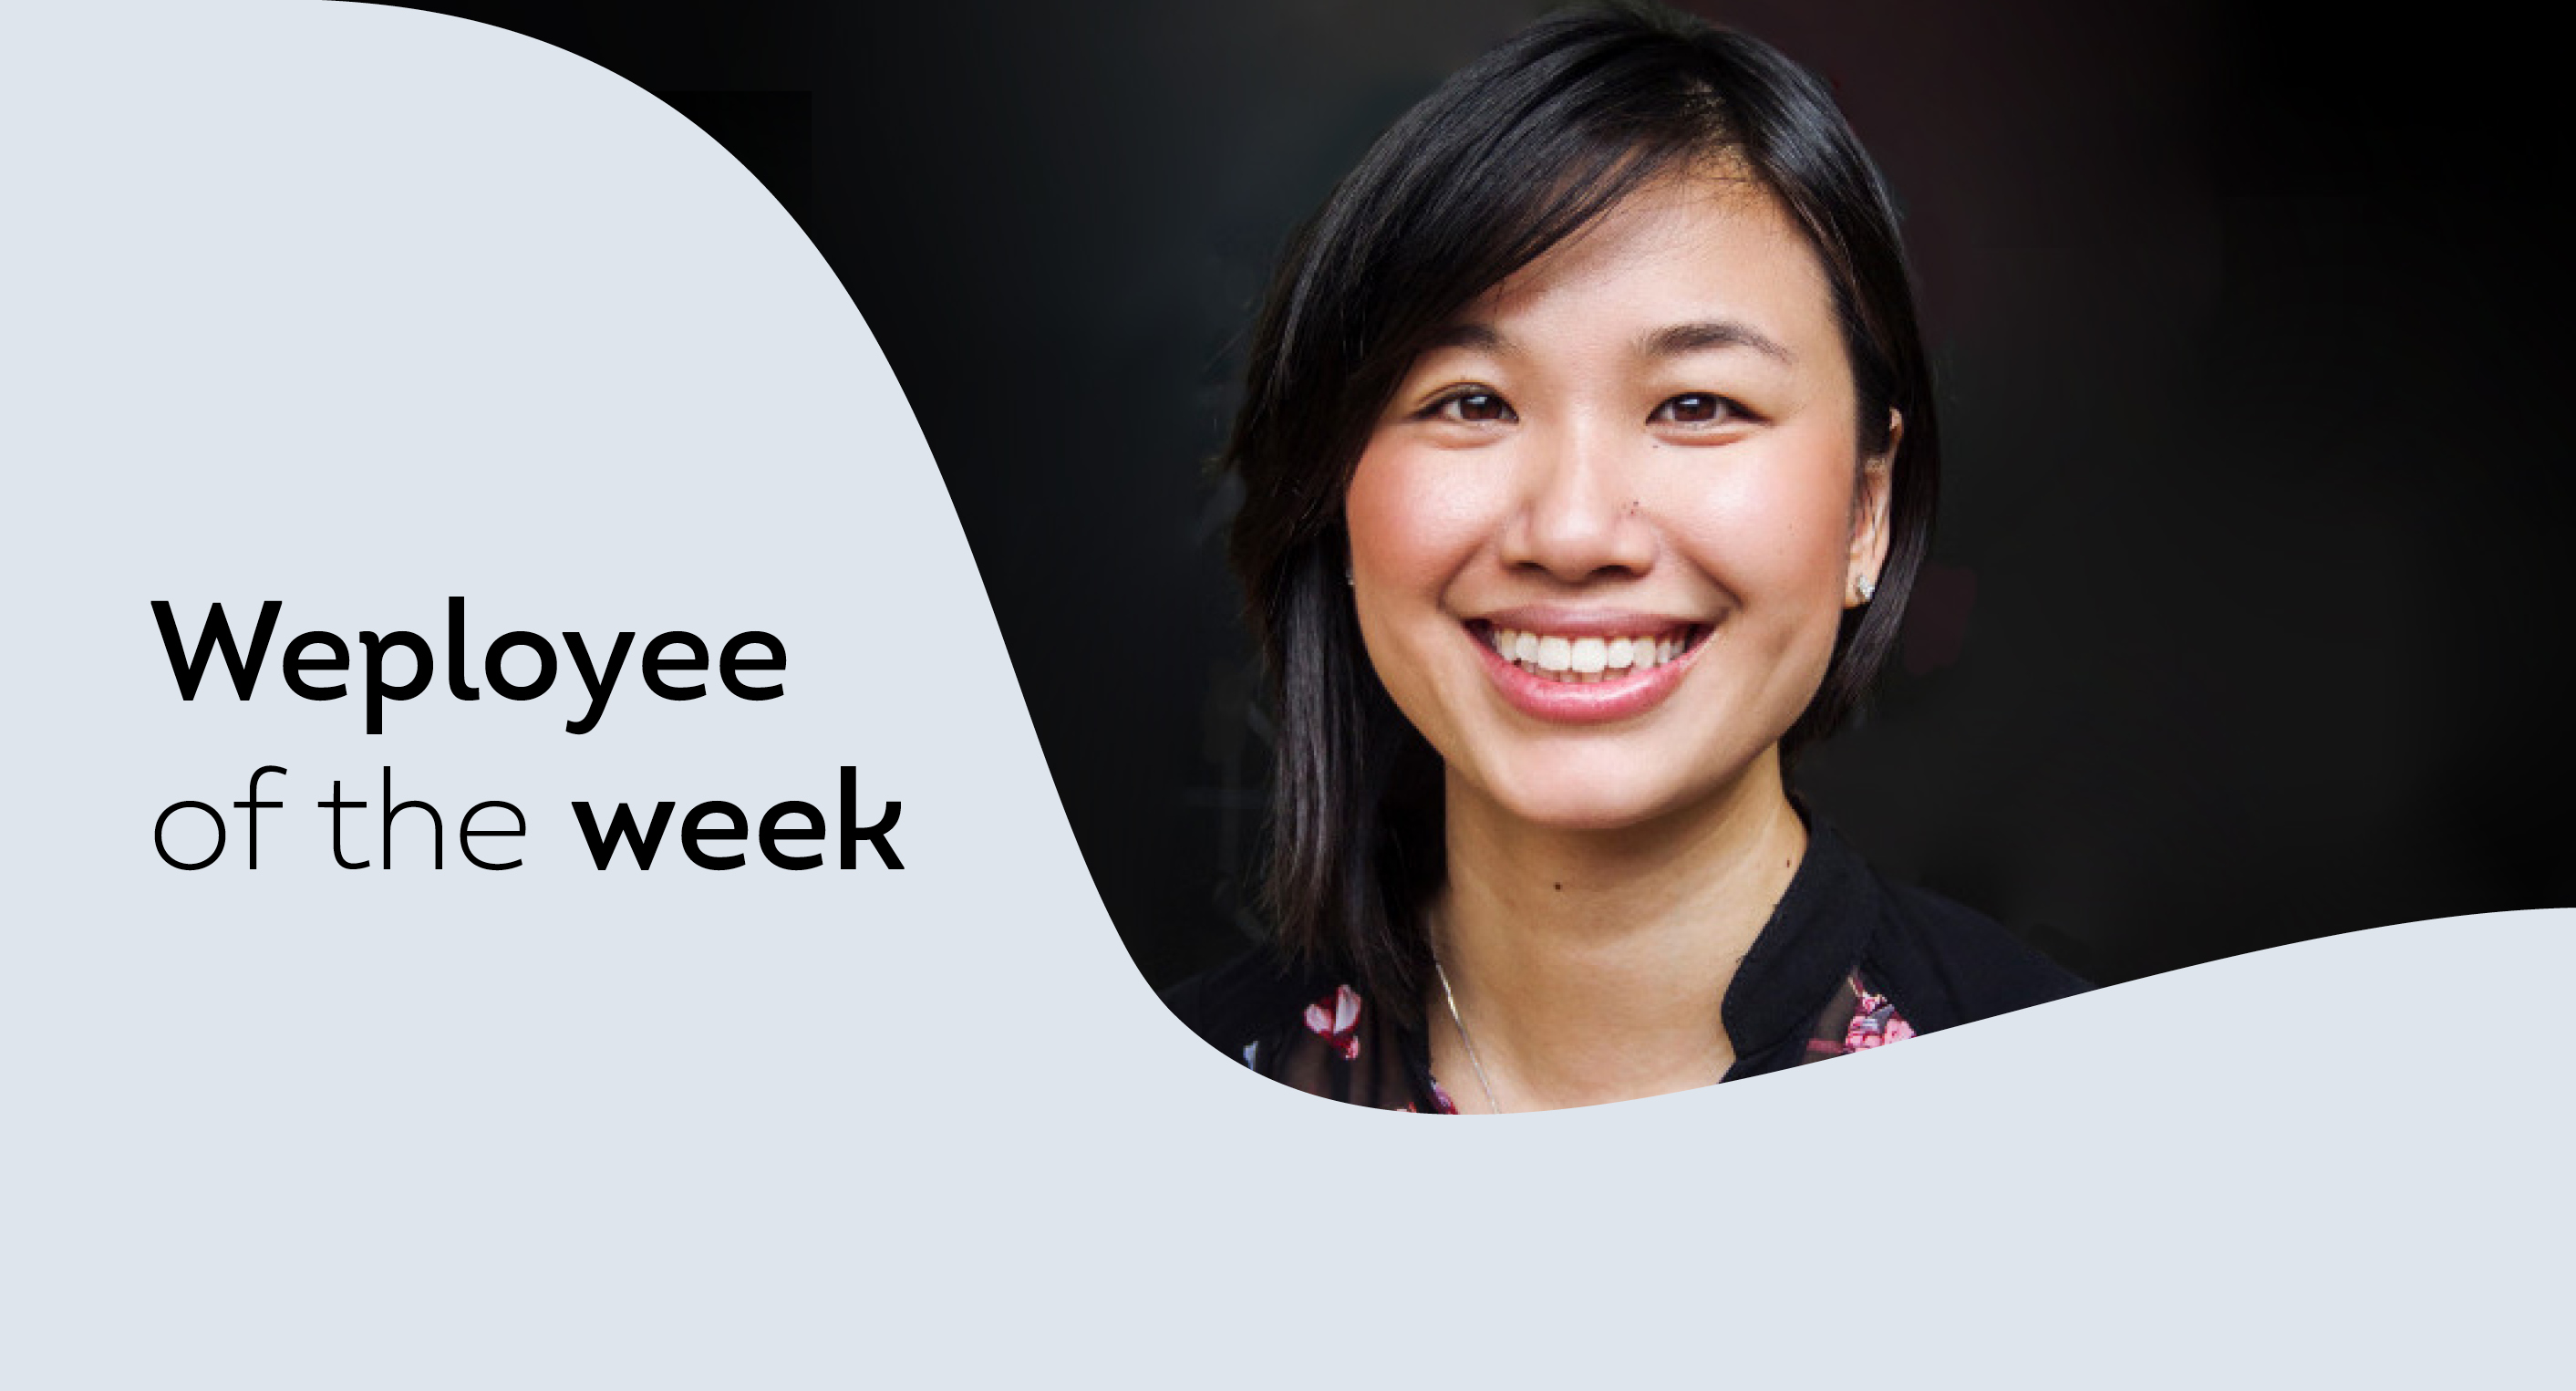 Weployee of the Week - Featured Image3-2